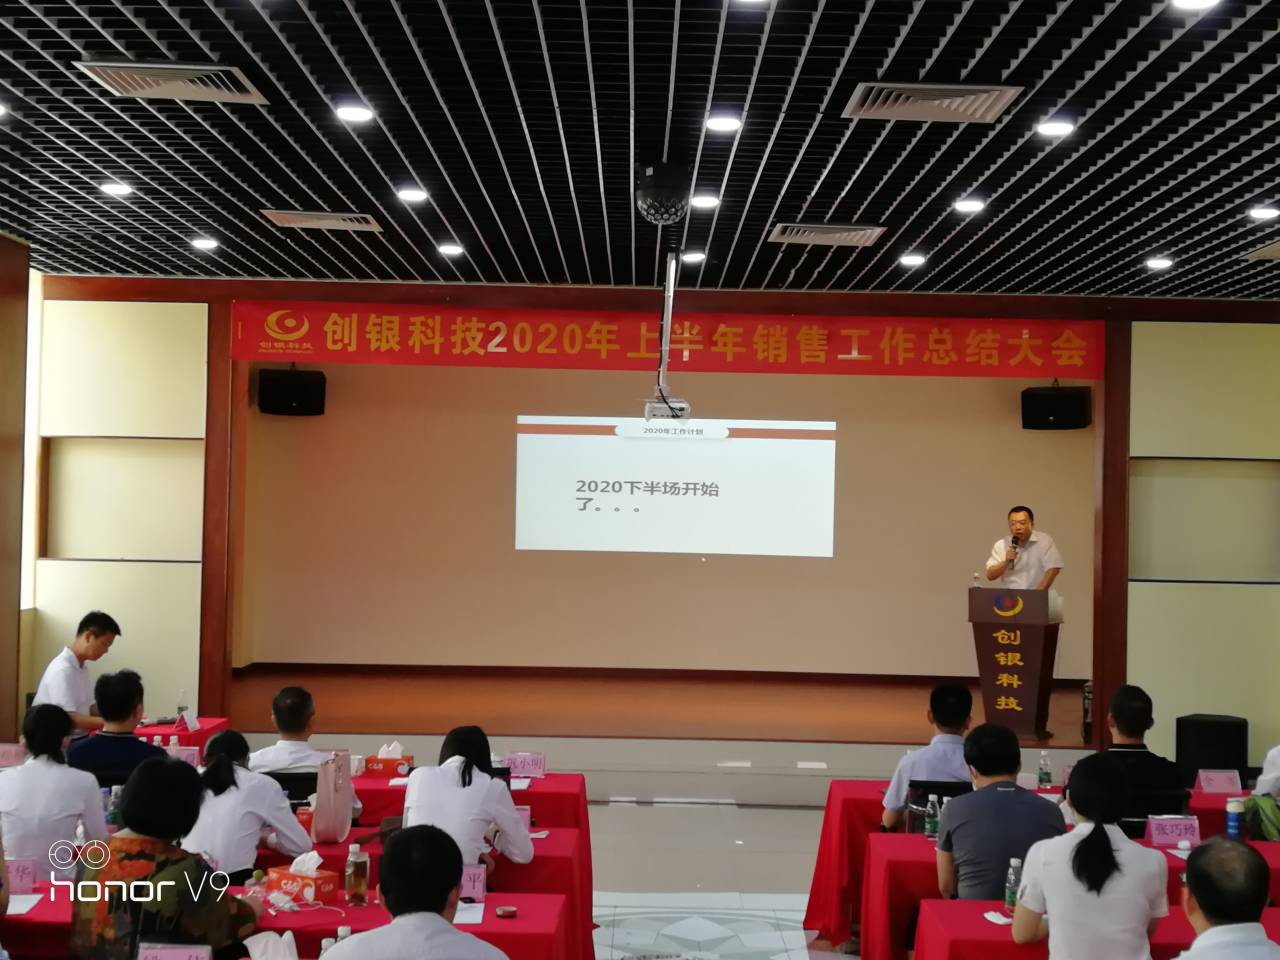 Chunangyin sales summary meeting for the middle of 2020